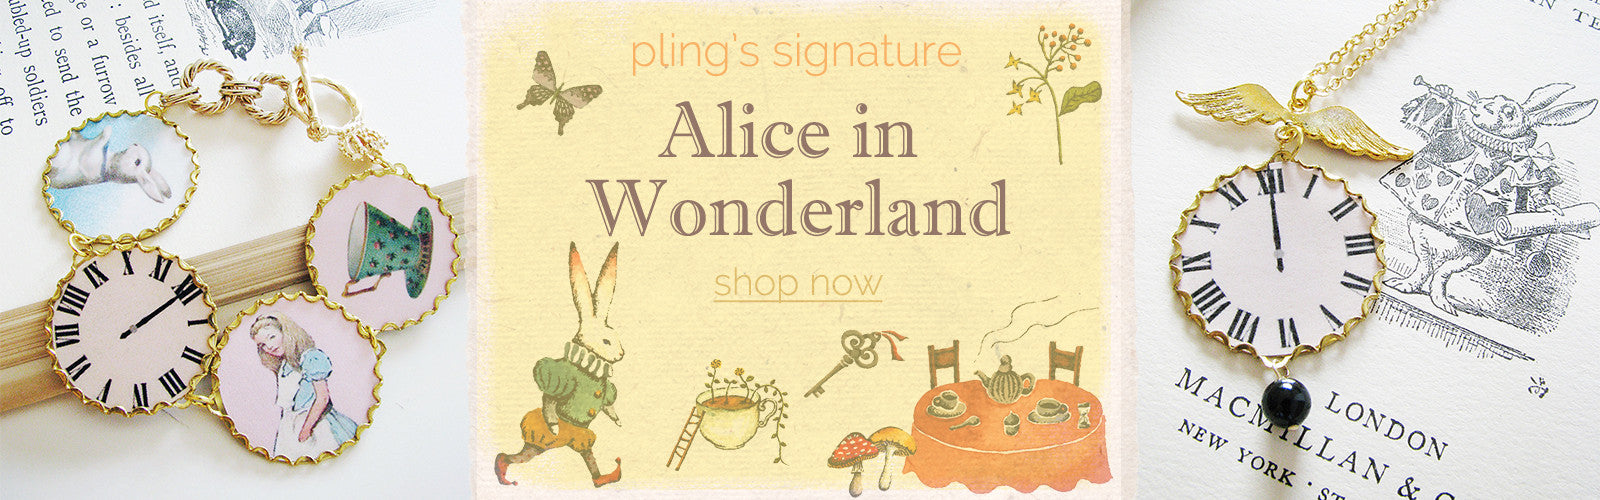 Alice in Wonderland jewelry by pling - bracelets, necklaces, jewellery, The White Rabbit, Teacup